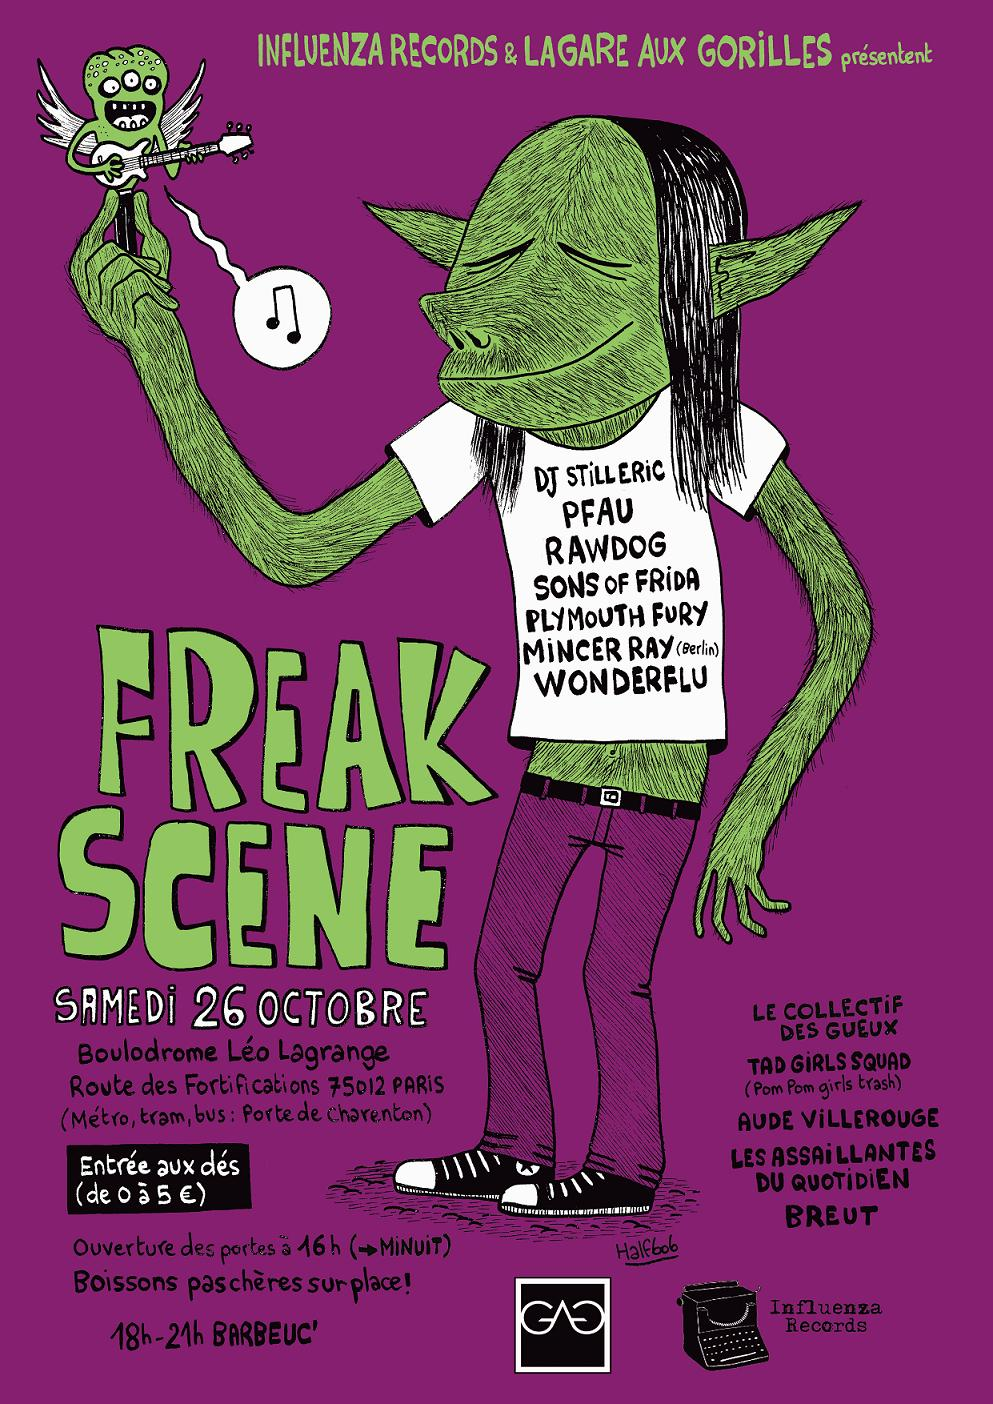 http://www.influenza-records.com/wp-content/uploads/2013/09/Affiche-Freak-Scene-couleur.jpg